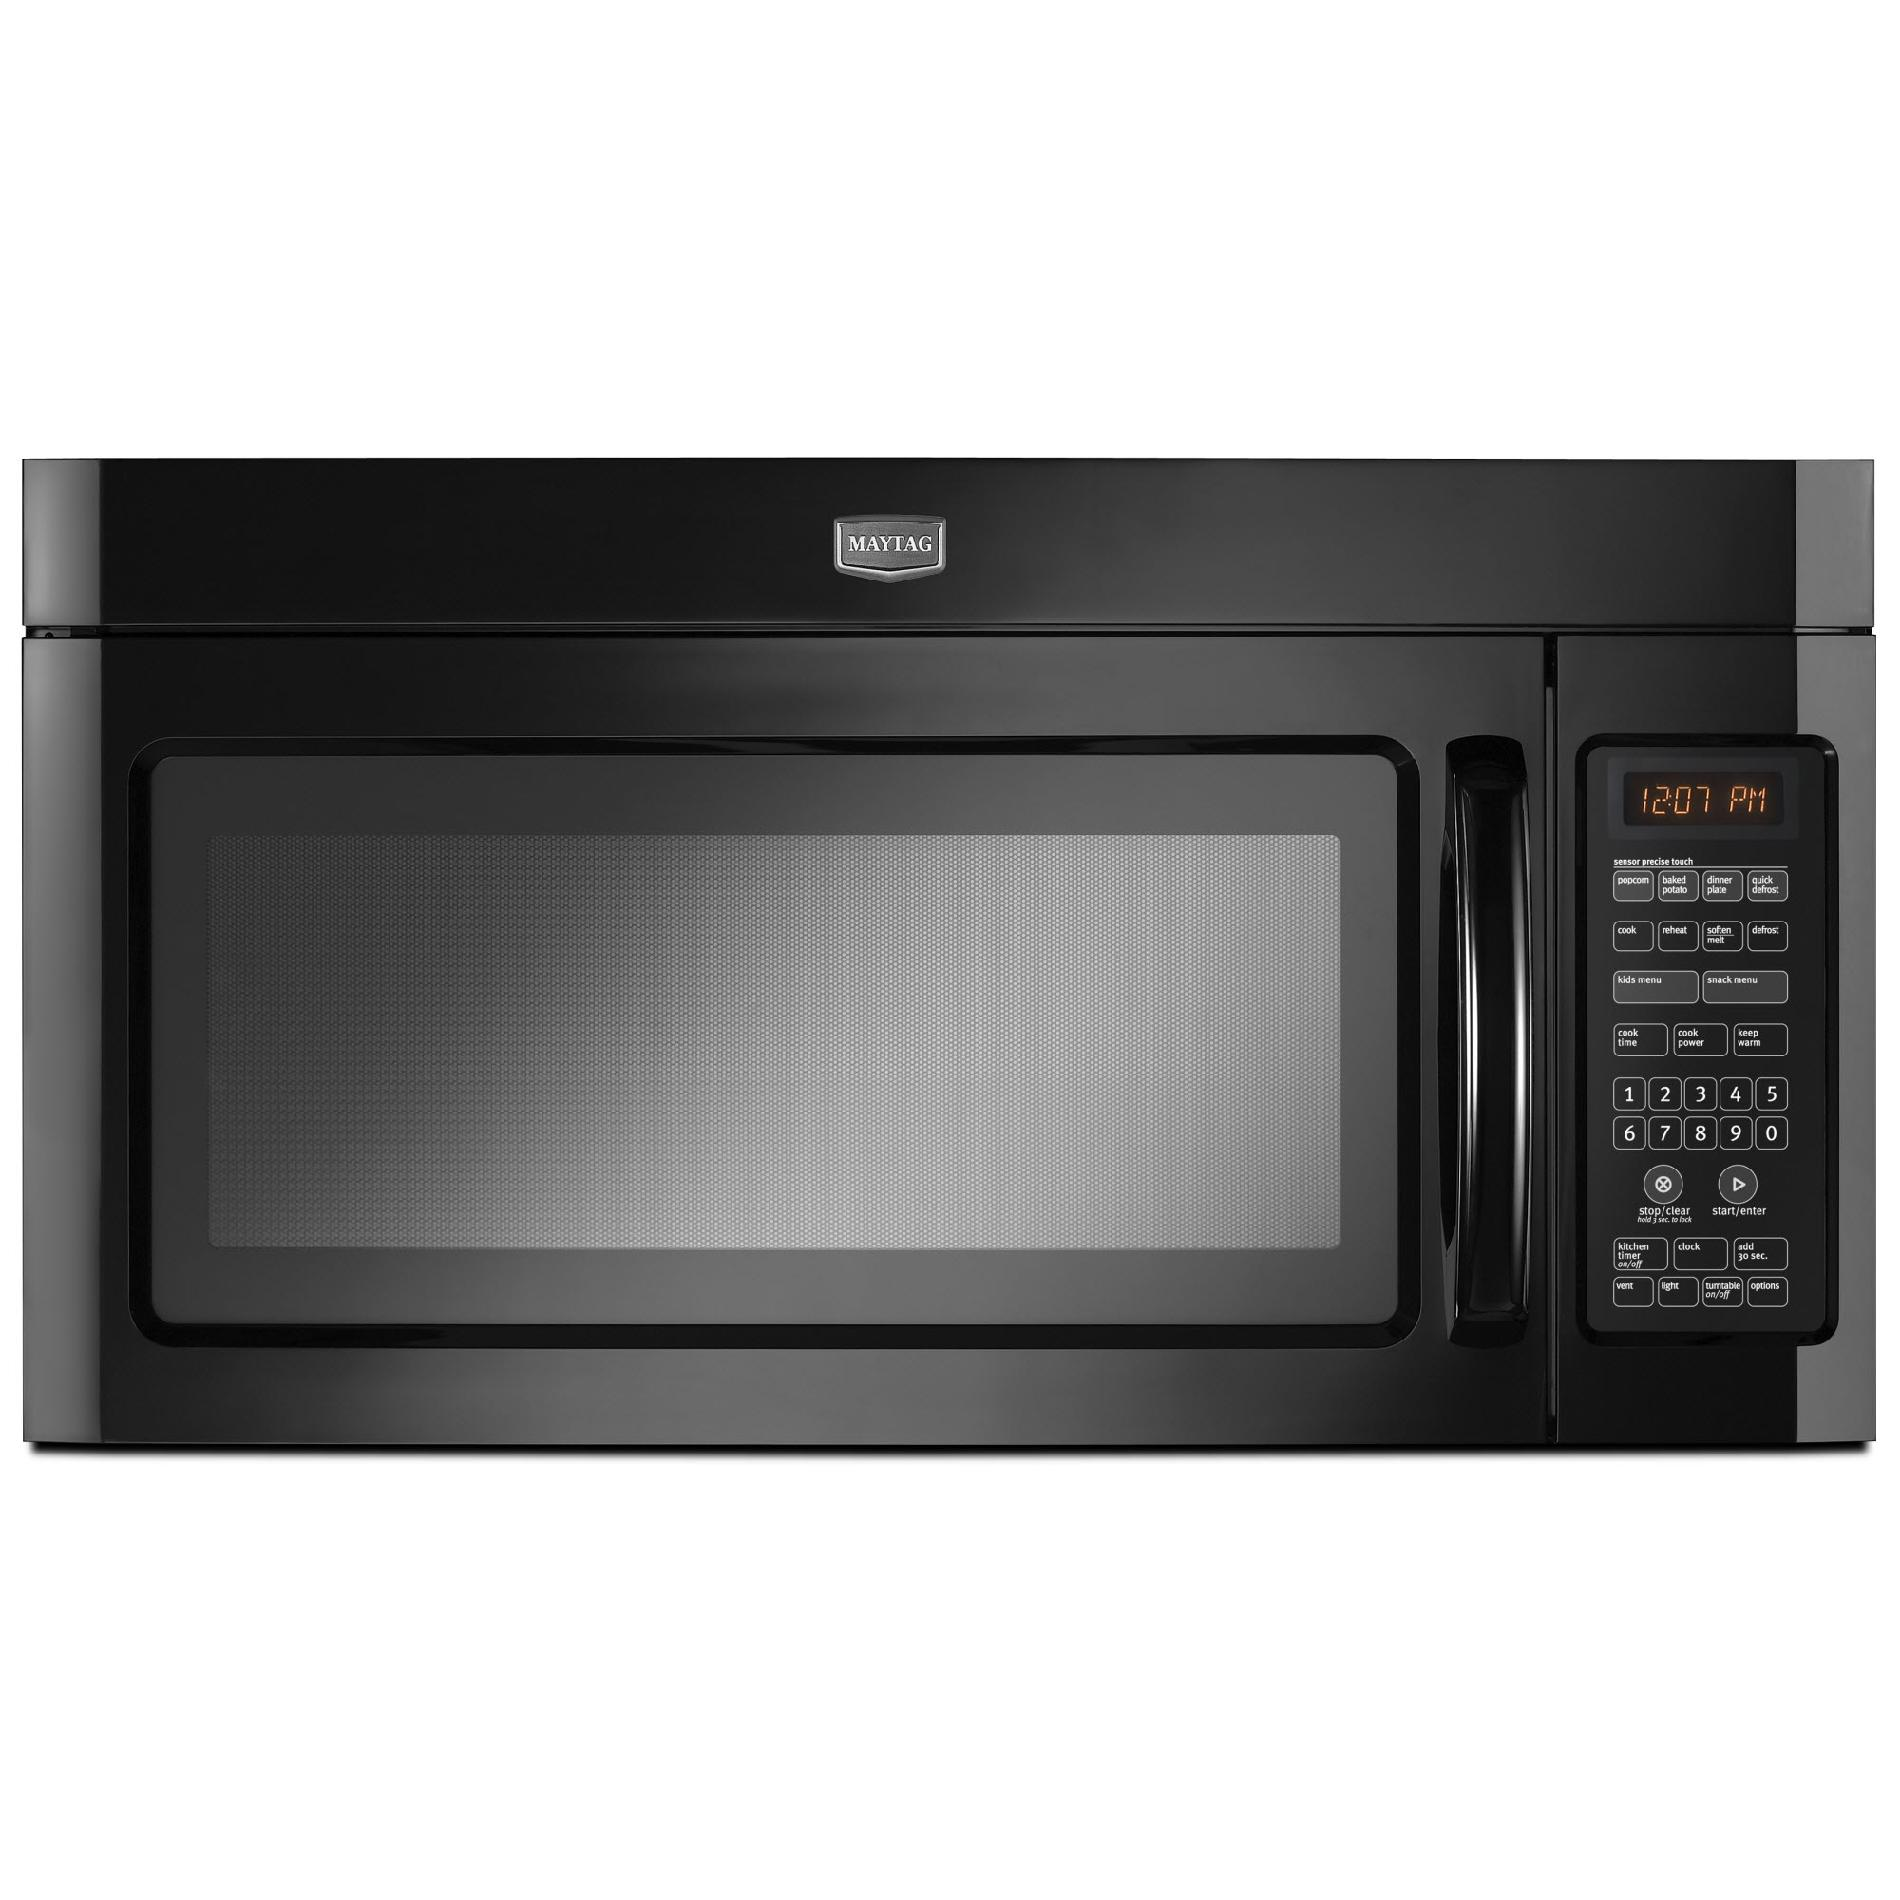 Frigidaire Ffce1439l 1 4 Cu Ft Countertop Microwave Oven With 1 100 Watts 10 Power Levels Sensor One Touch Options Keep Warm Setting And Multi Stage Cooking 2014